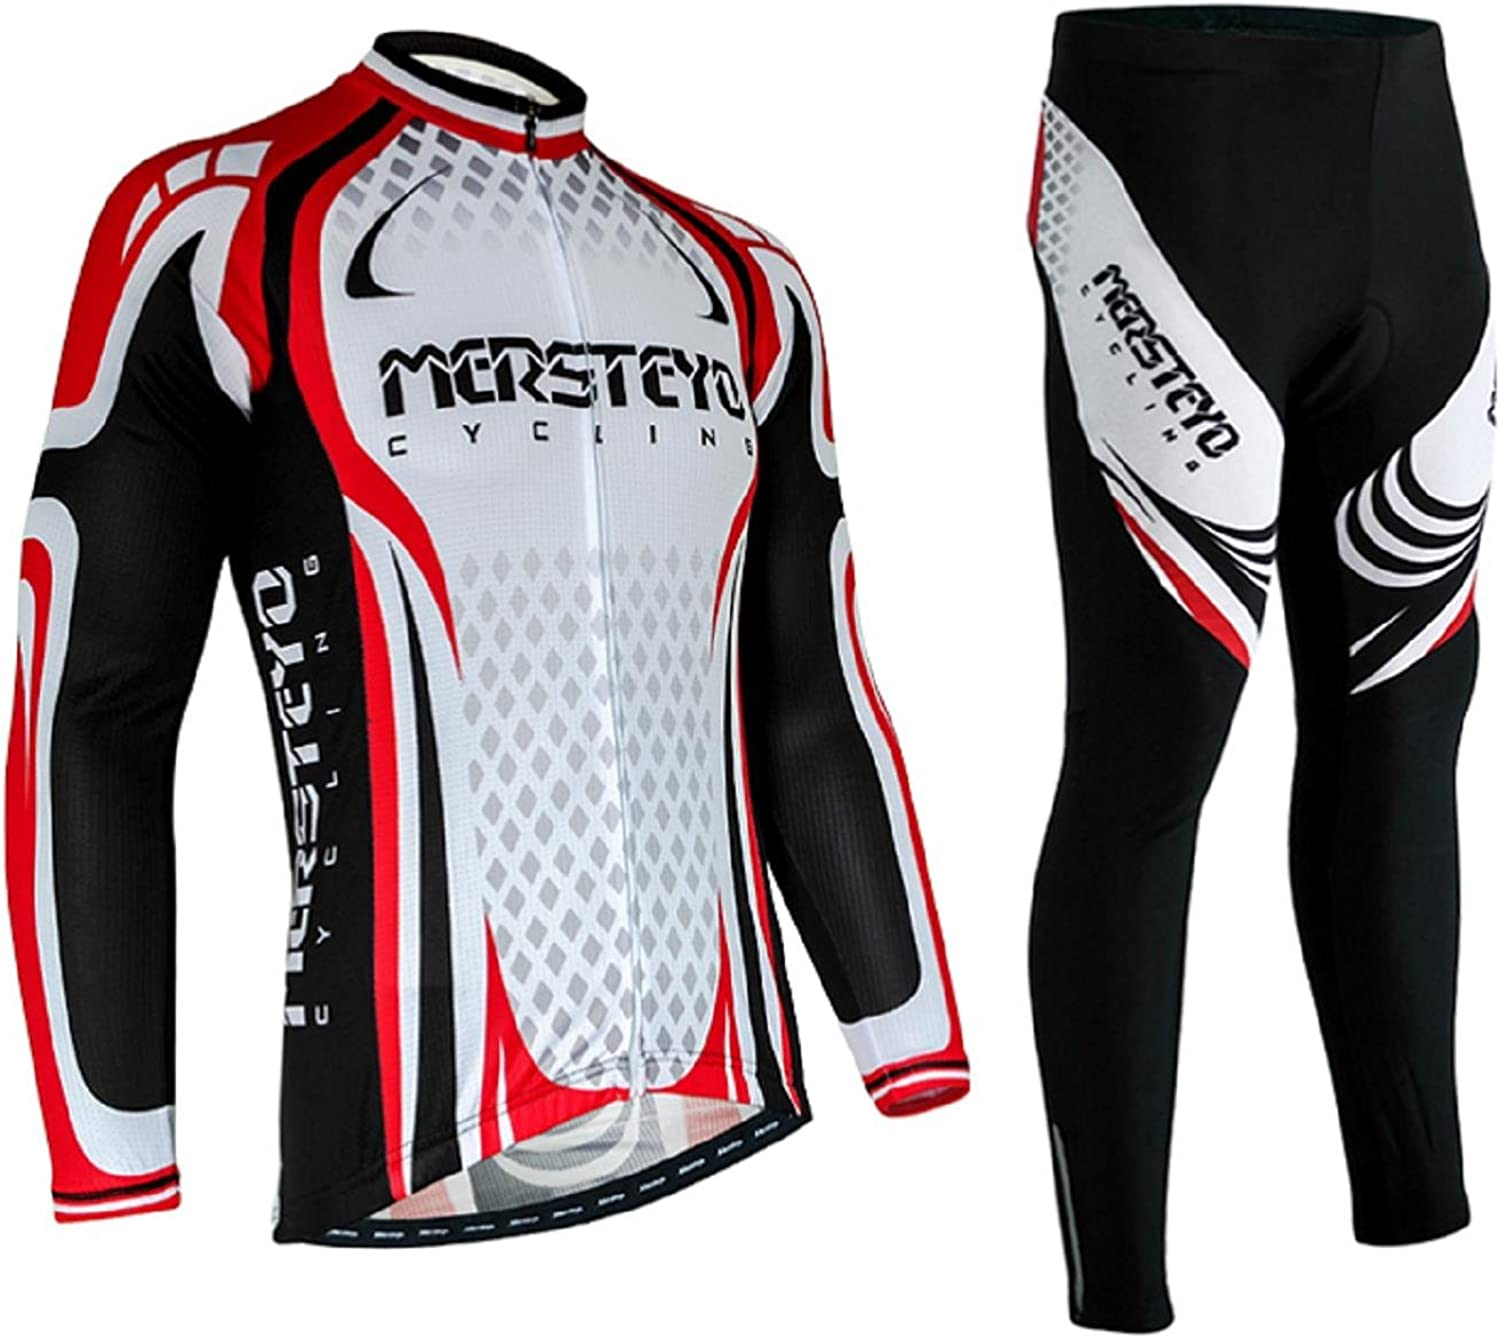 Mersteyo Ride Men's Elite LTD Jersey